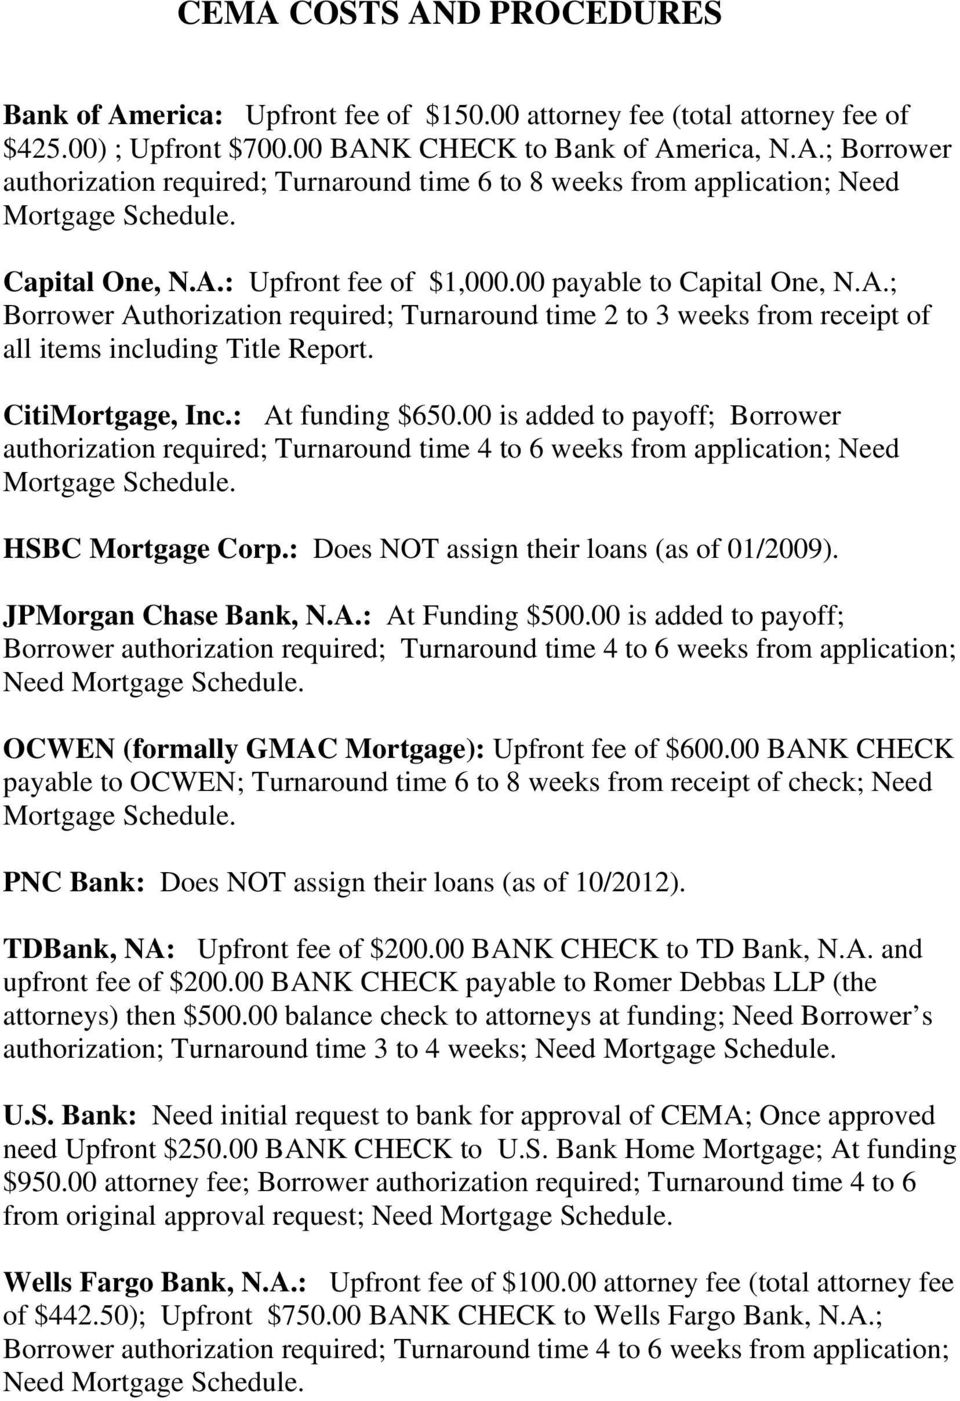 CitiMortgage, Inc.: At funding $650.00 is added to payoff; Borrower authorization required; Turnaround time 4 to 6 weeks from application; Need Mortgage Schedule. HSBC Mortgage Corp.